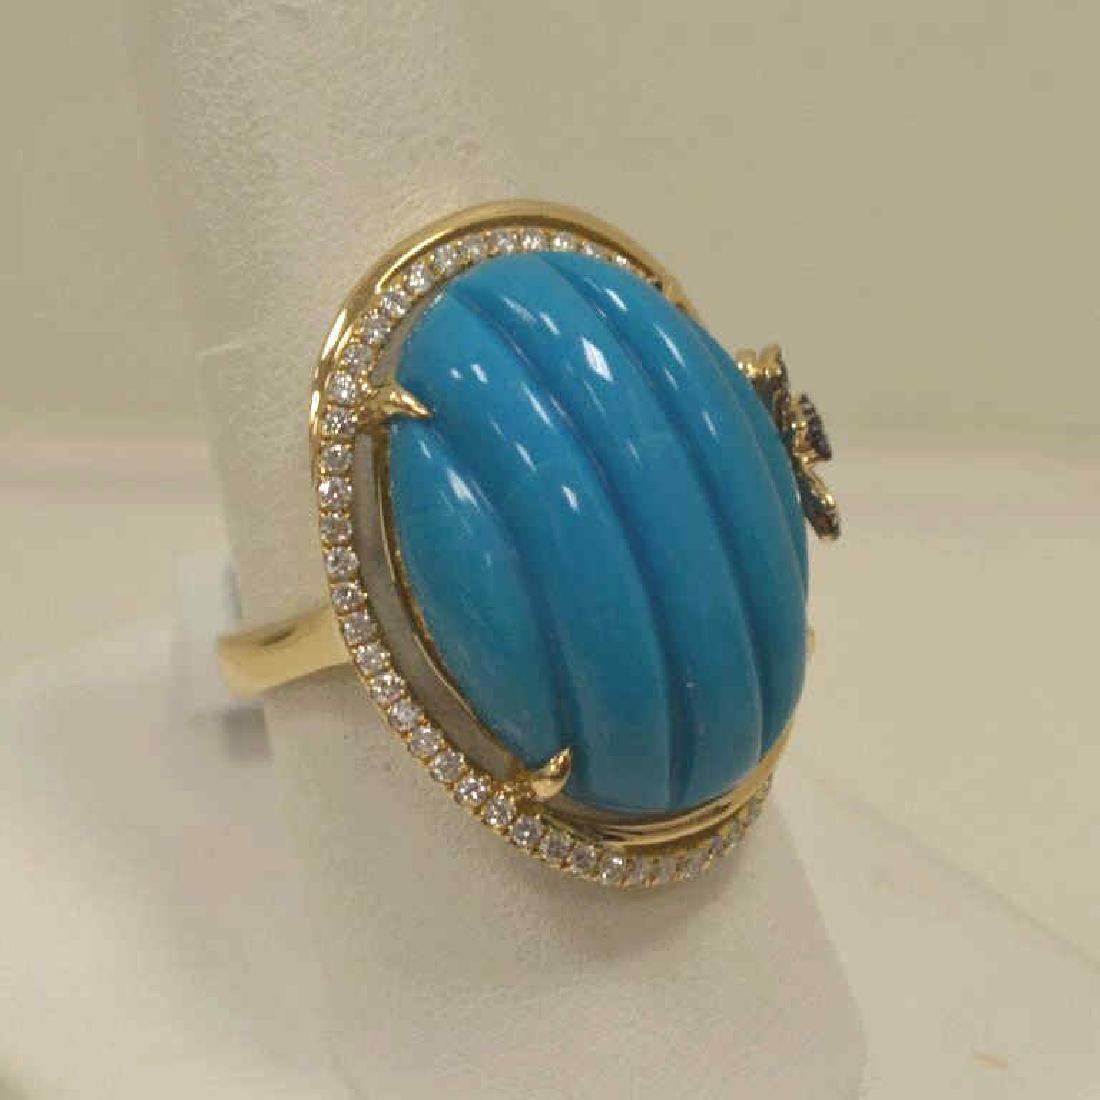 14kt yellow gold turquoise and diamond ring - 2